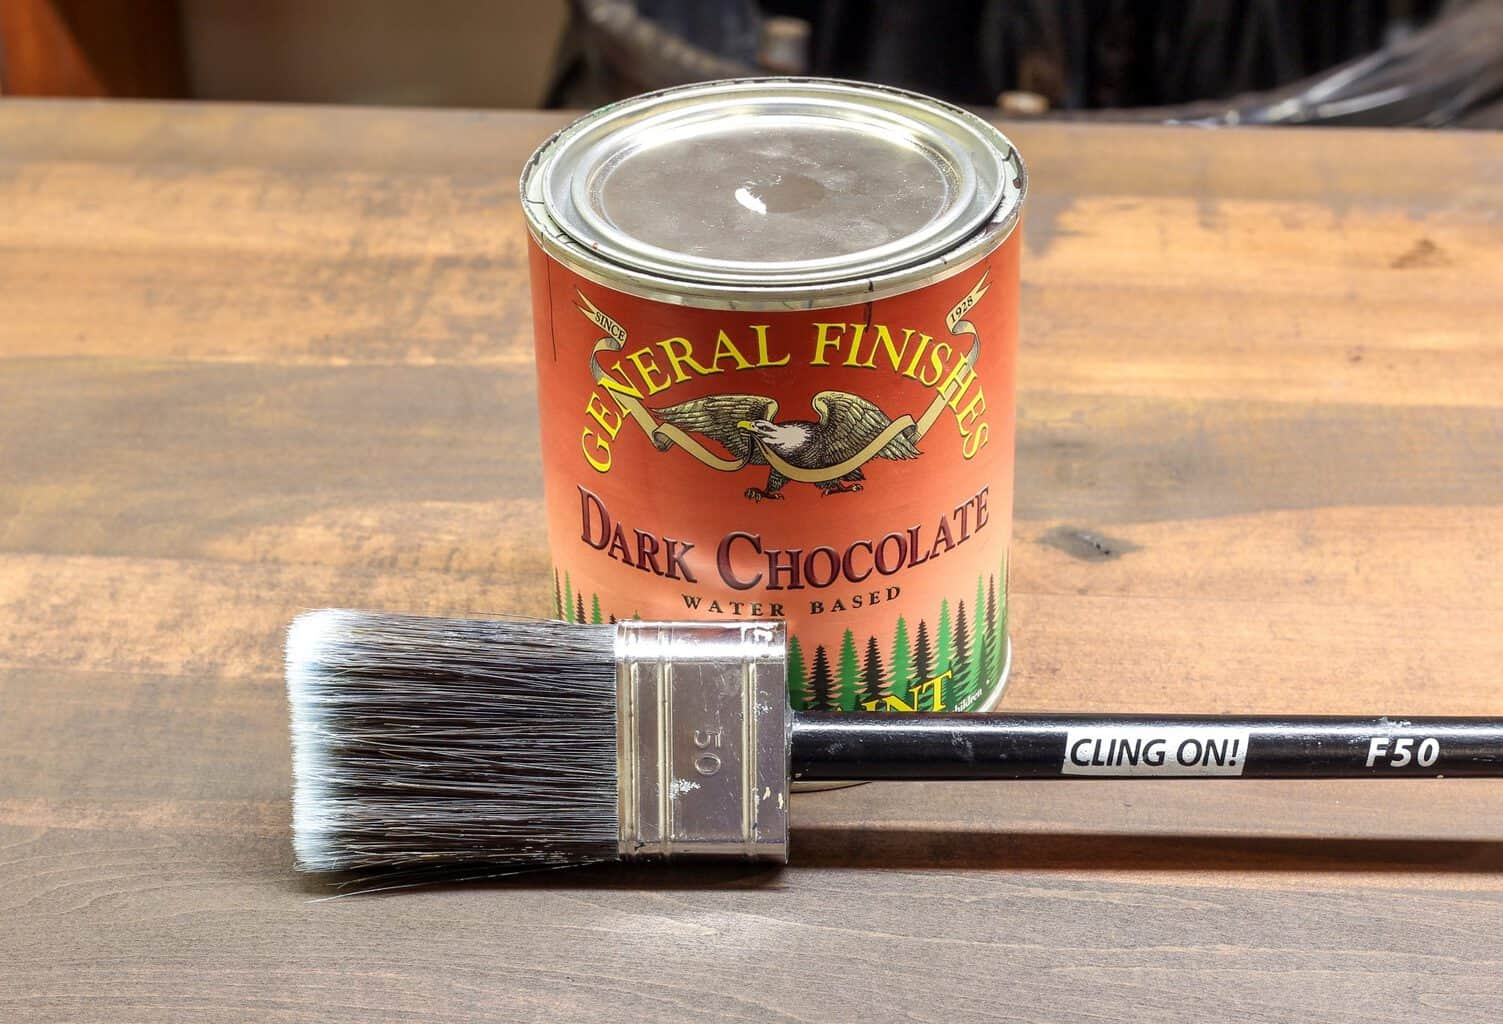 Dark Chocolate Milk Paint by General Finishes and a ClingOn! F50 brush